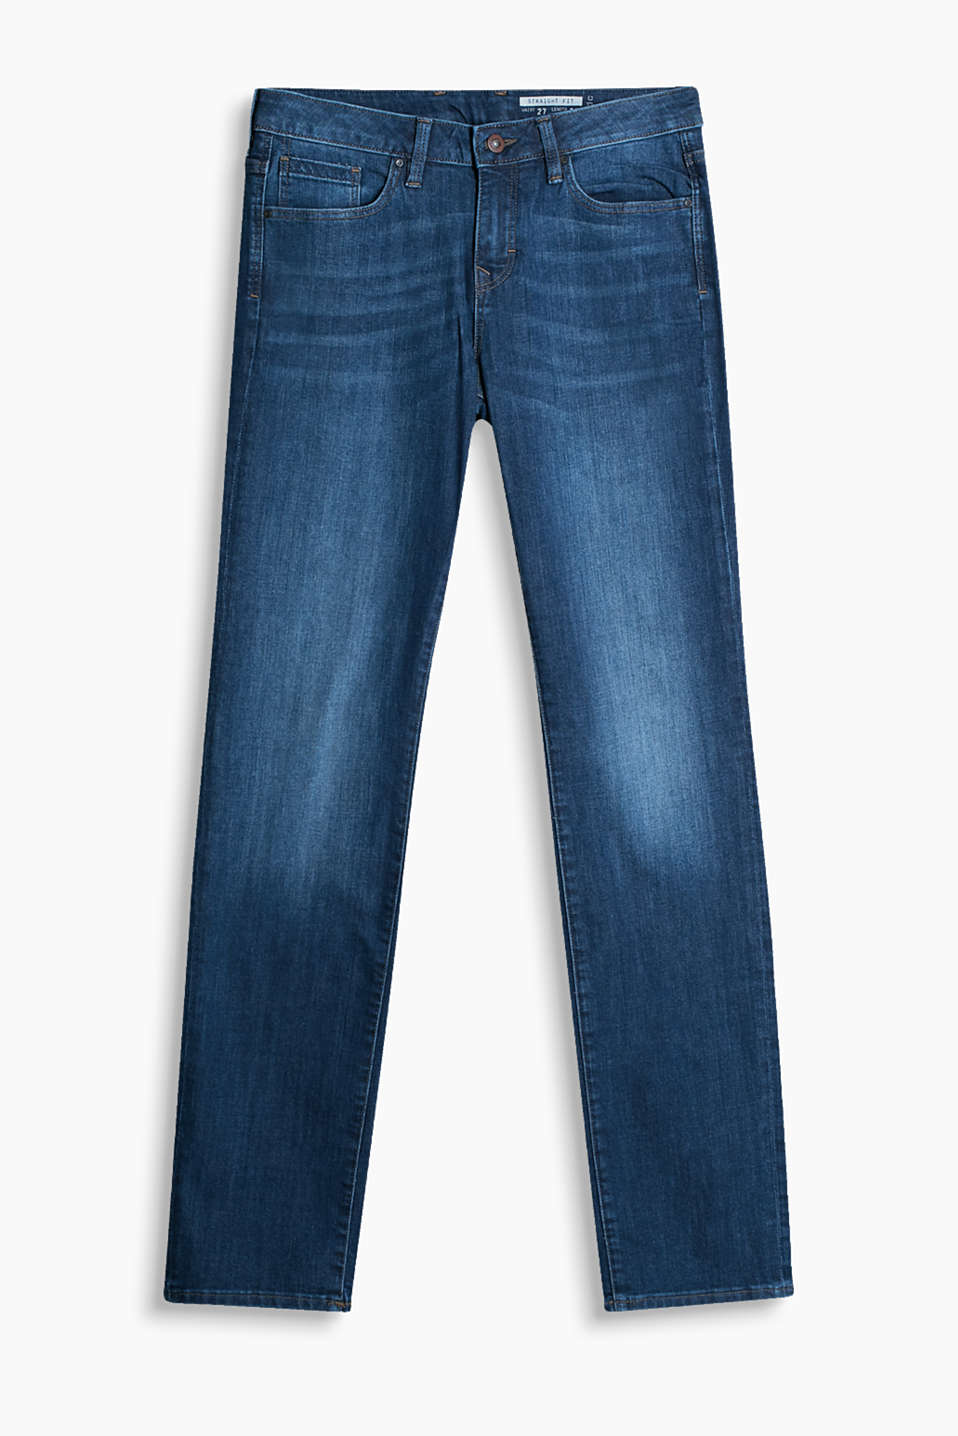 Comfy stretch jeans with a washed finish